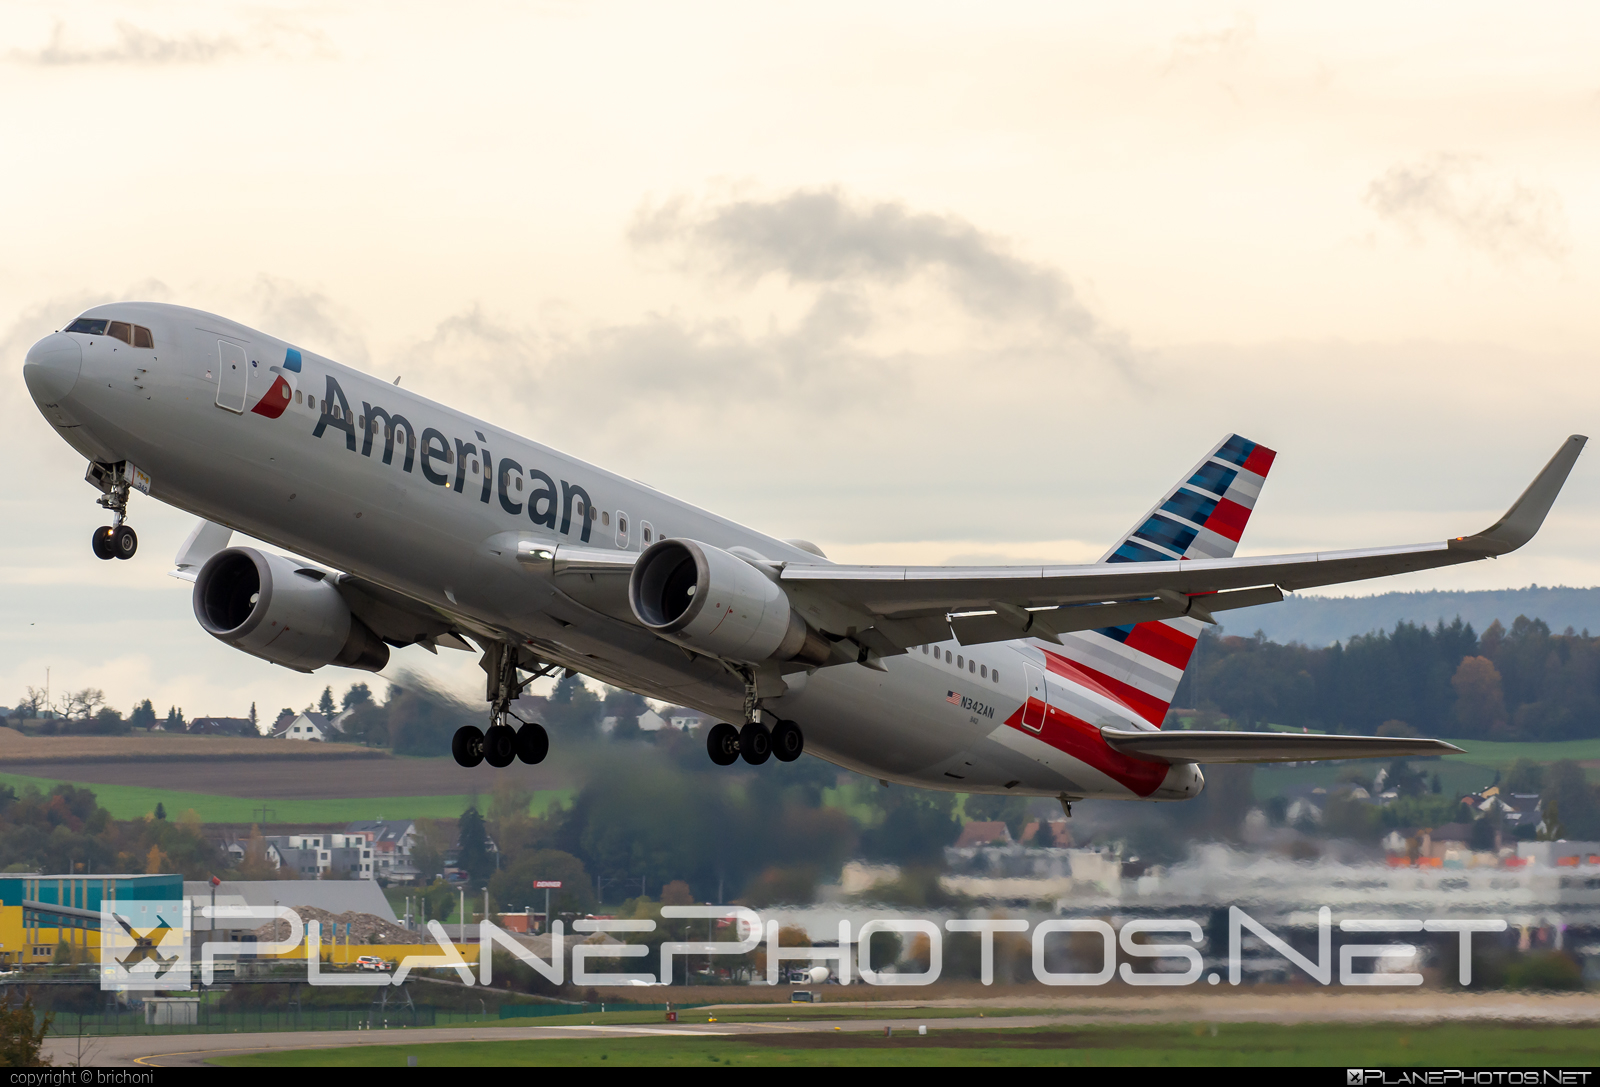 Boeing 767-300ER - N342AN operated by American Airlines #americanairlines #b767 #b767er #boeing #boeing767